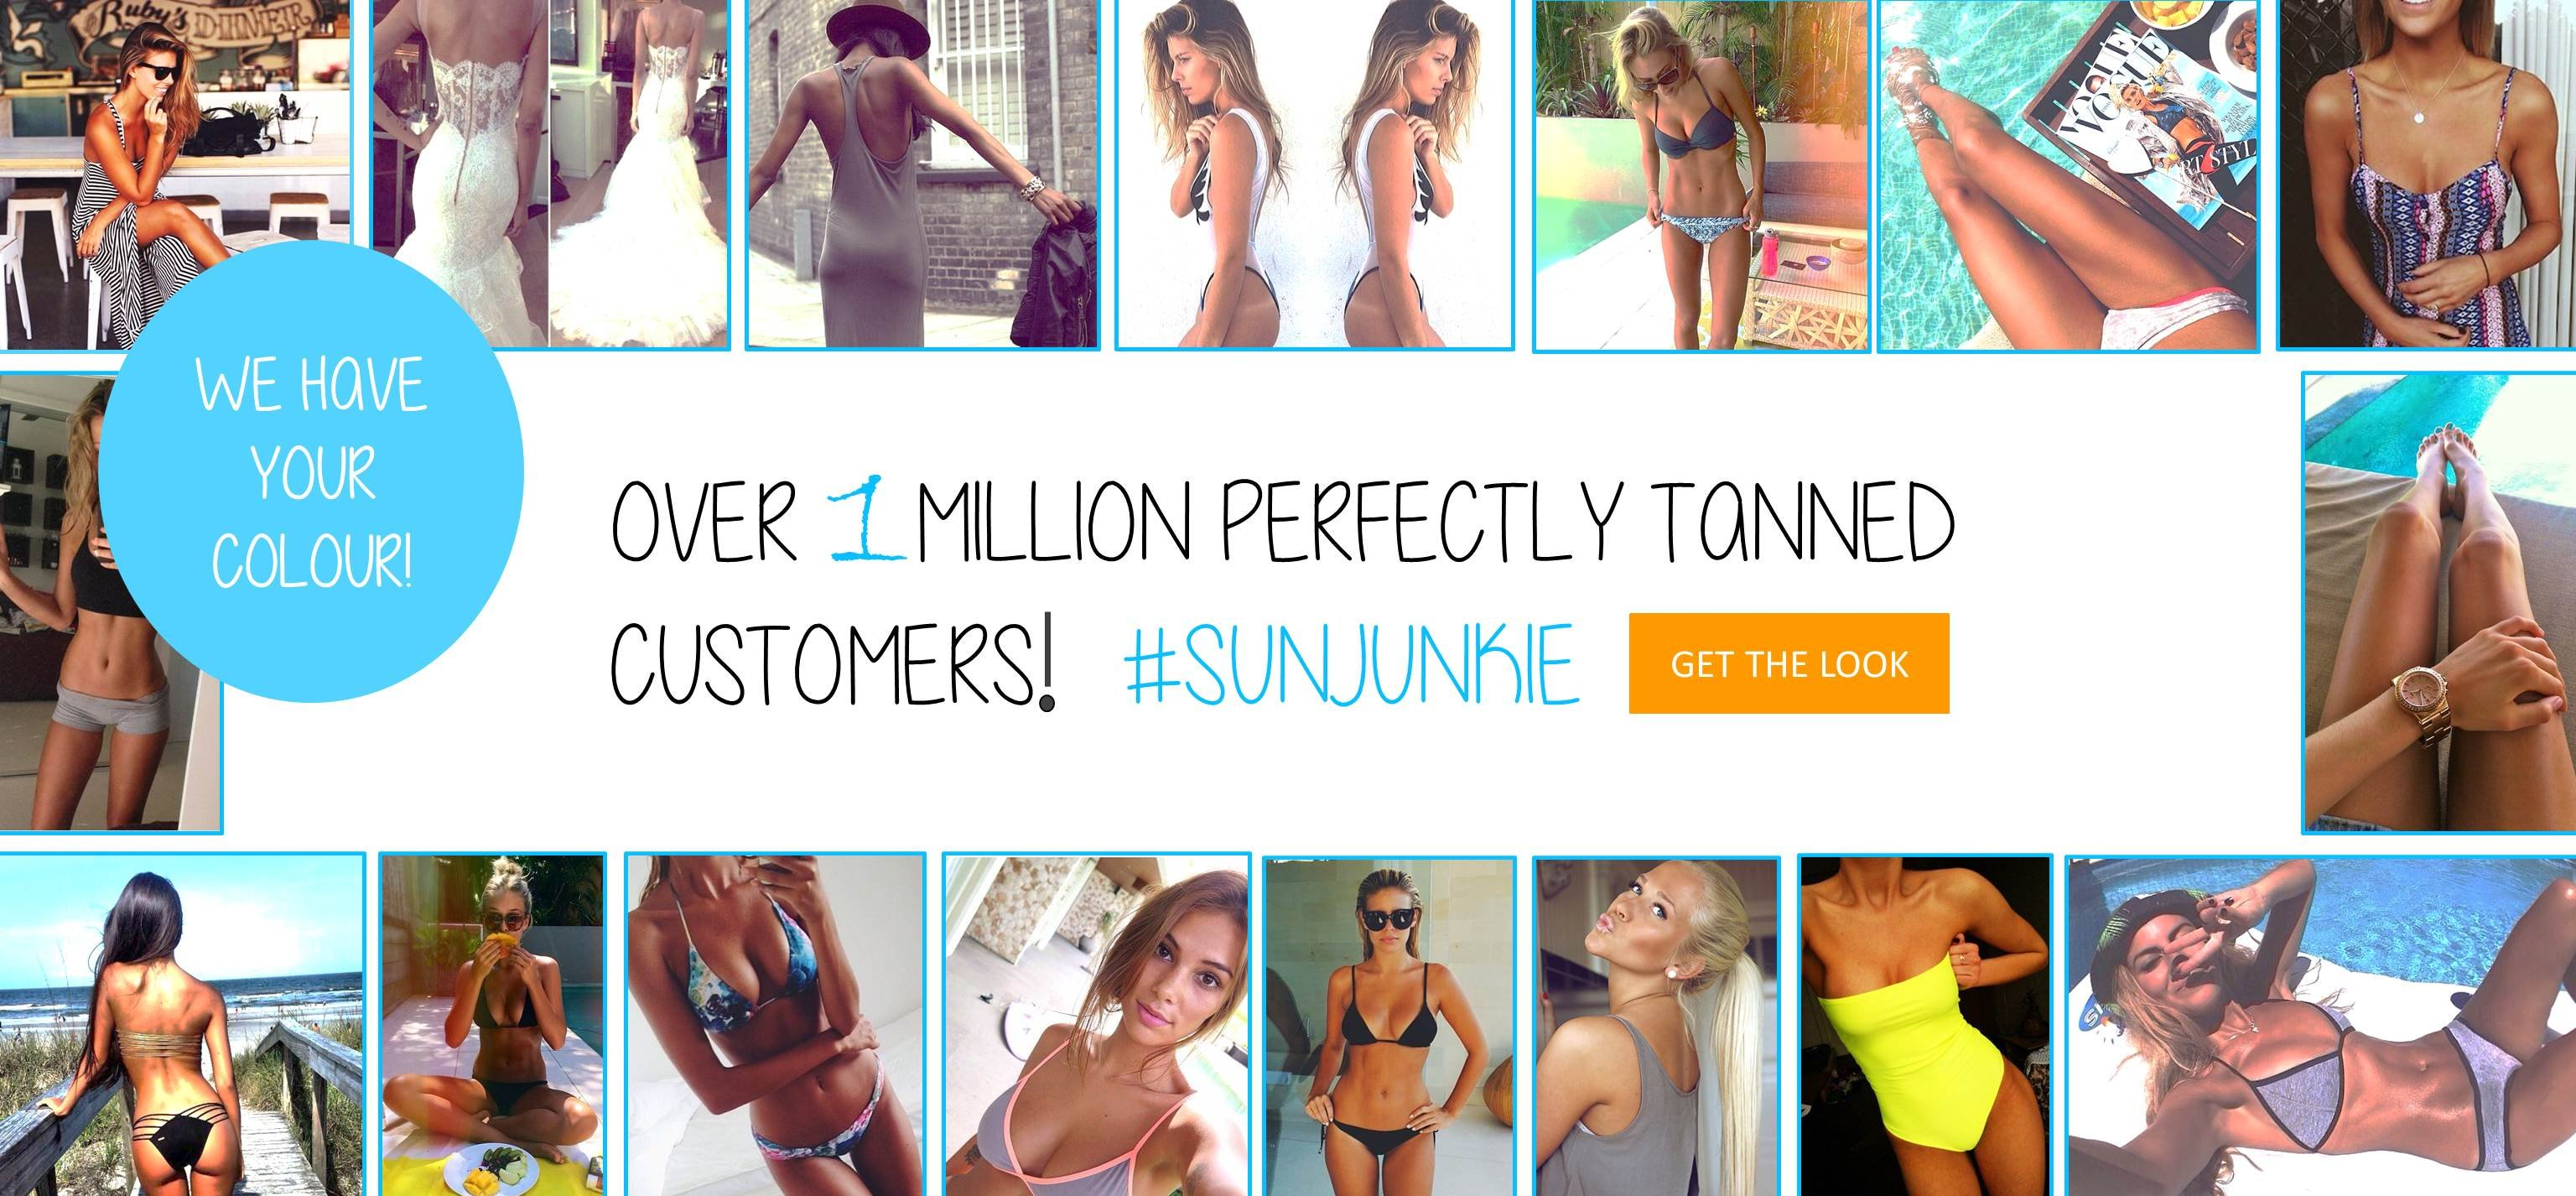 Sunjunkie fake tan